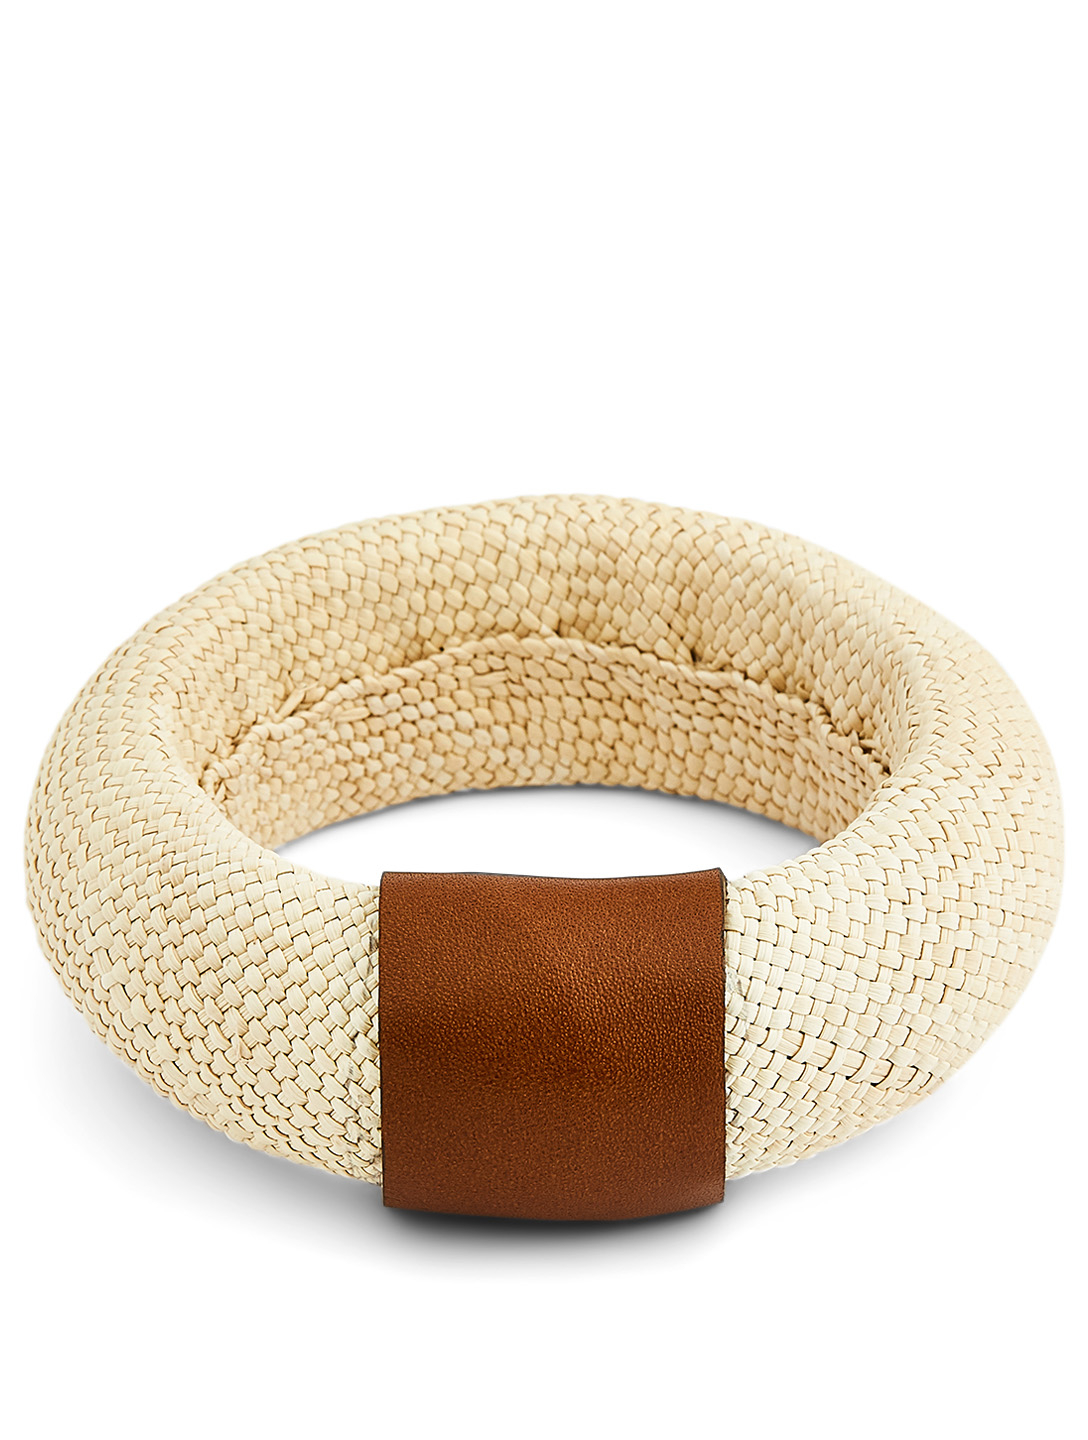 MOLA SASA Iraca Bangle Bracelet H Project Neutral